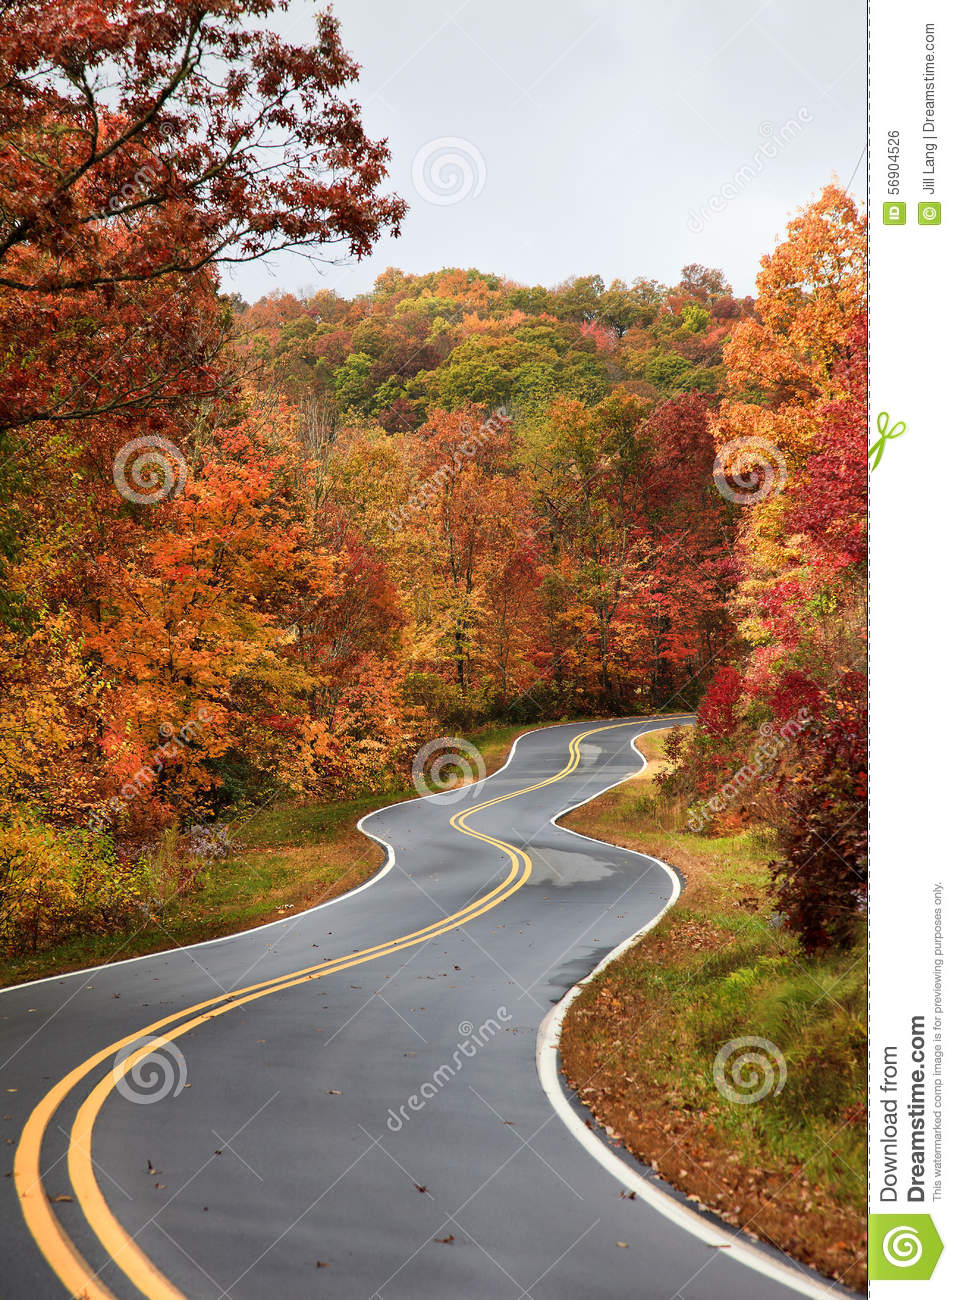 Free Wallpaper Fall Scenes Winding Road In The Fall Stock Photo Image Of Outdoors